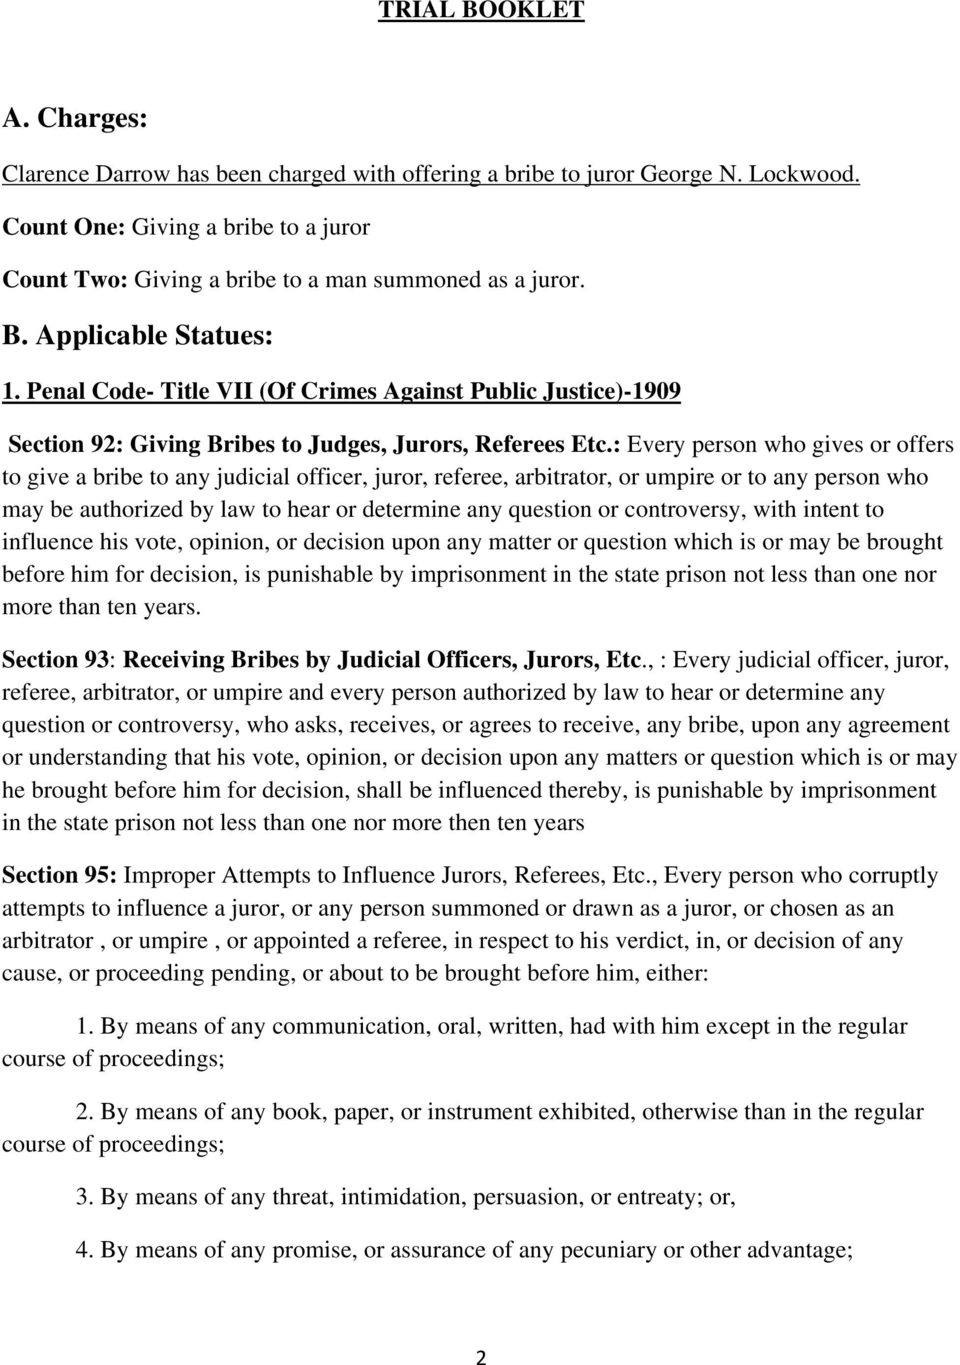 Penal Code- Title VII (Of Crimes Against Public Justice)-1909 Section 92: Giving Bribes to Judges, Jurors, Referees Etc.